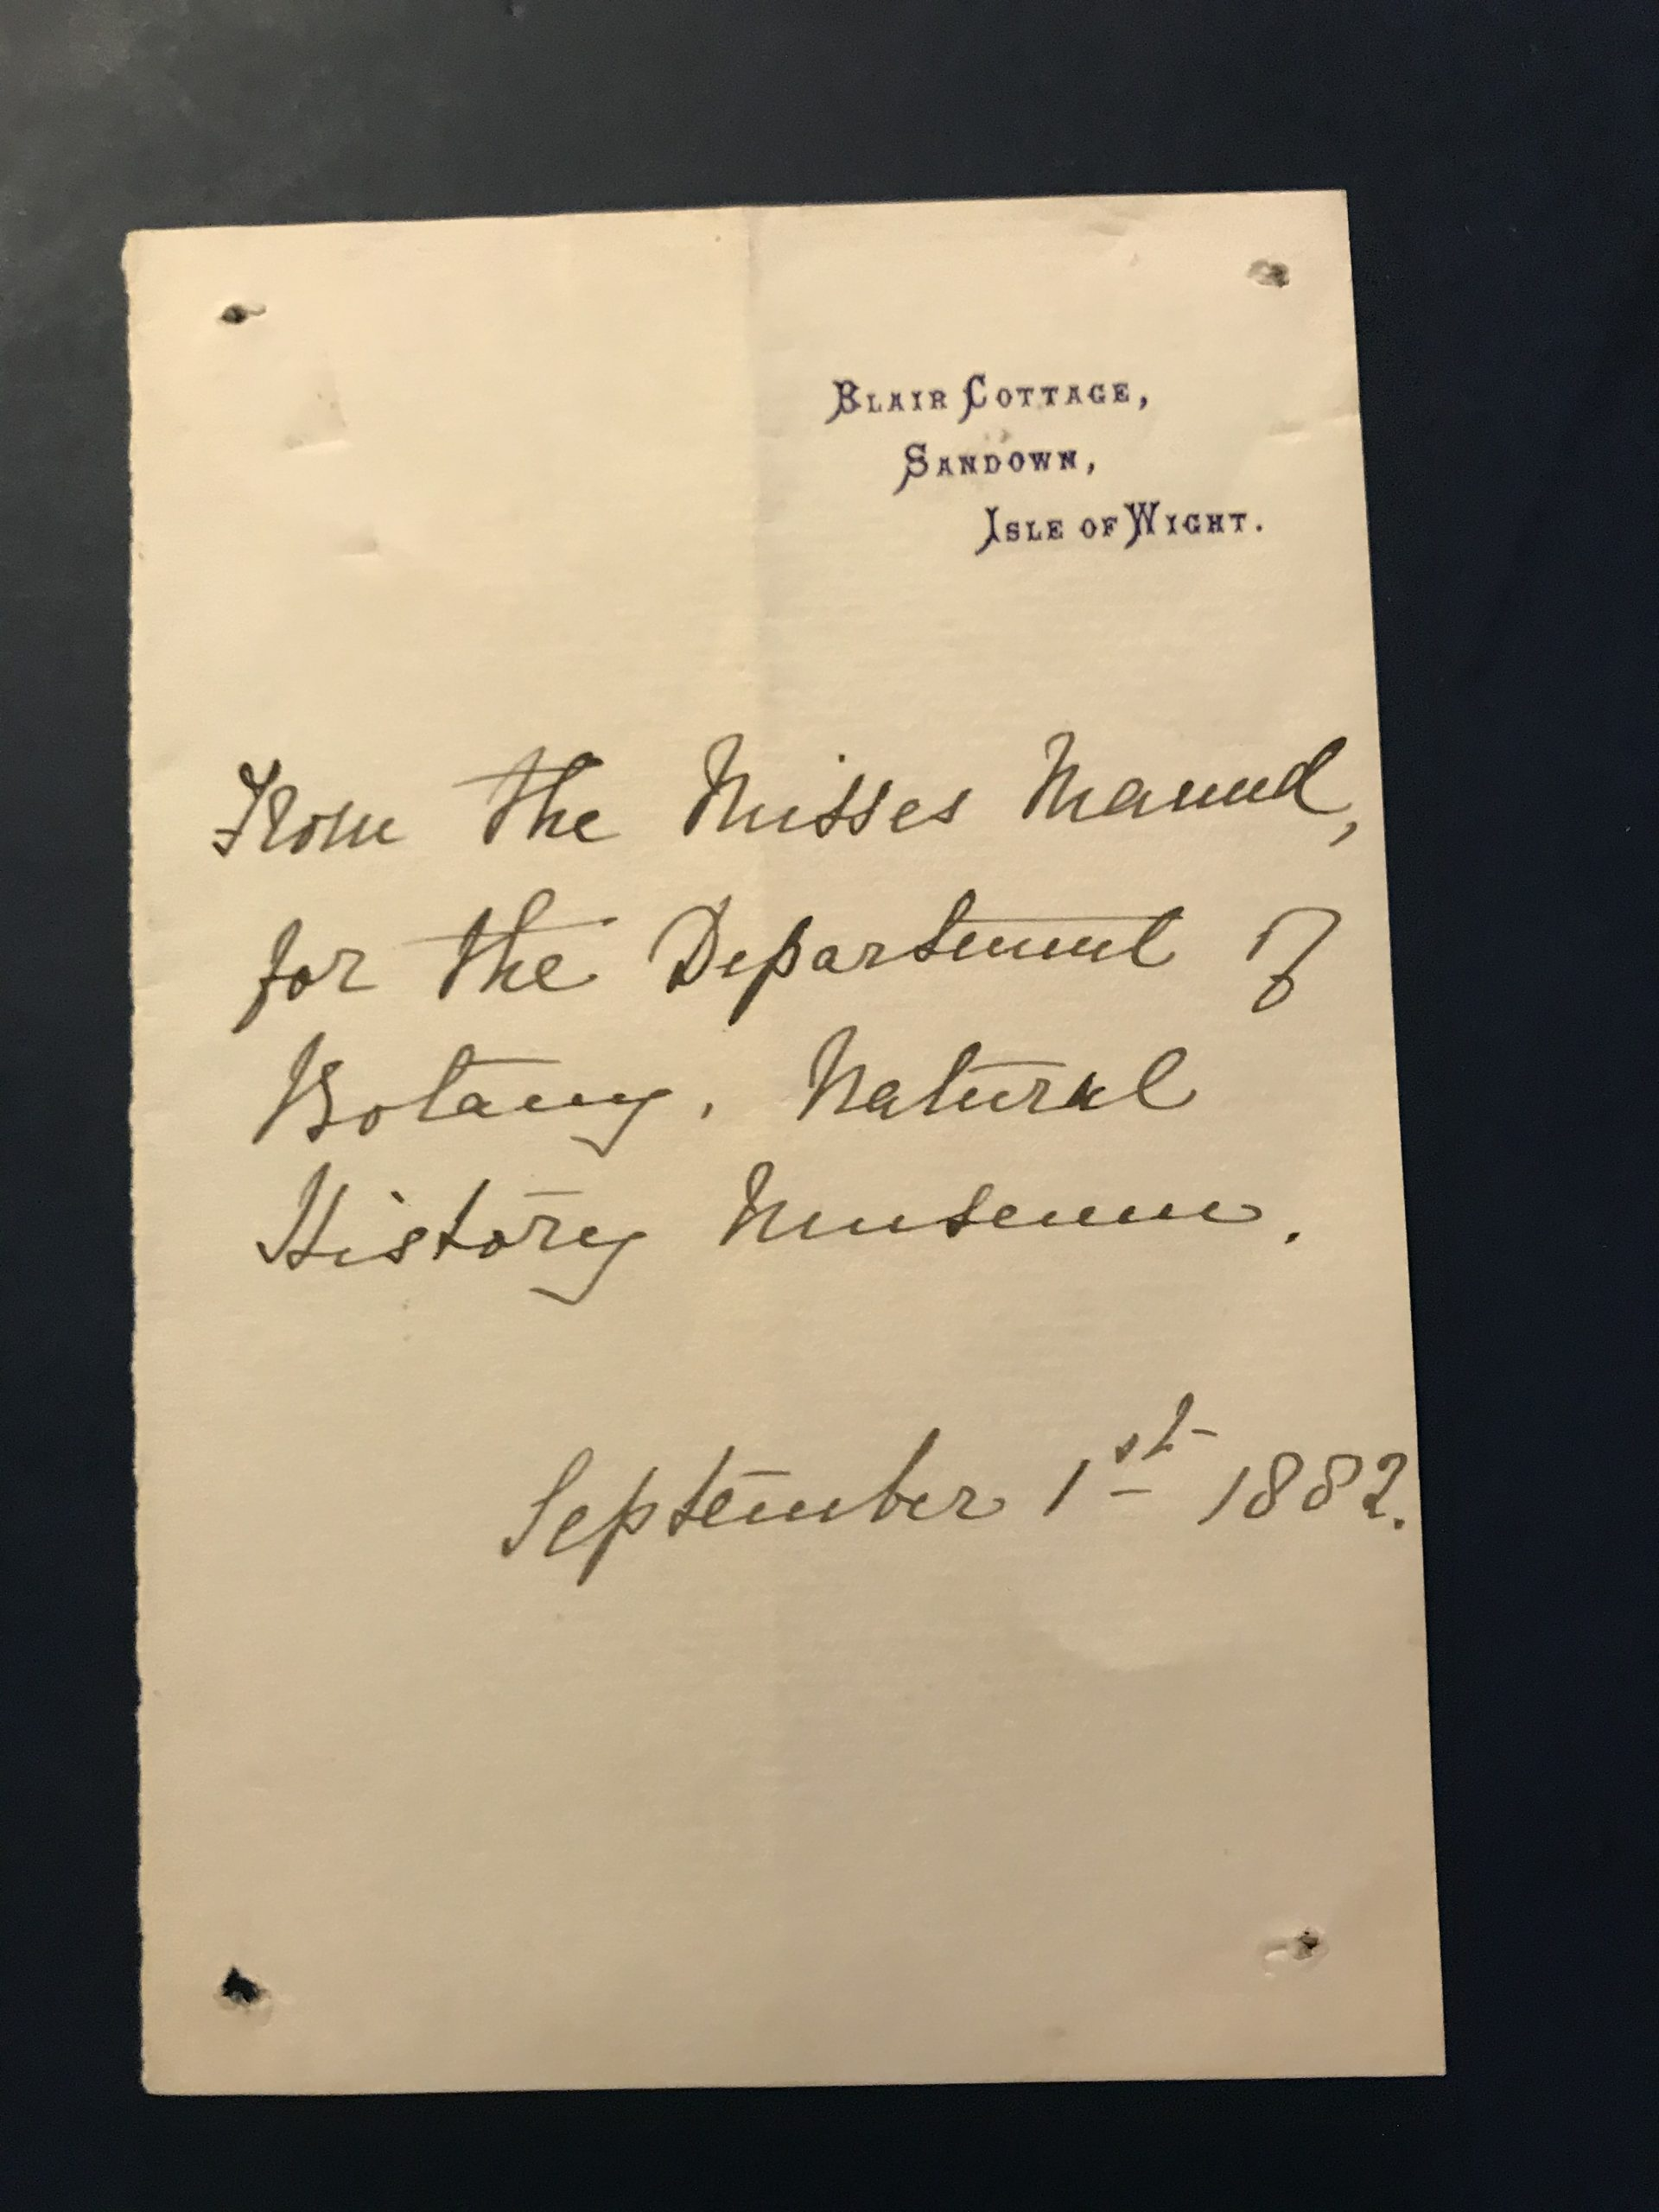 Note from Sarah Maund referring to The Misses Maund to the Keeper of Botanical Dept., Natural History Museum, September 2nd, 1882